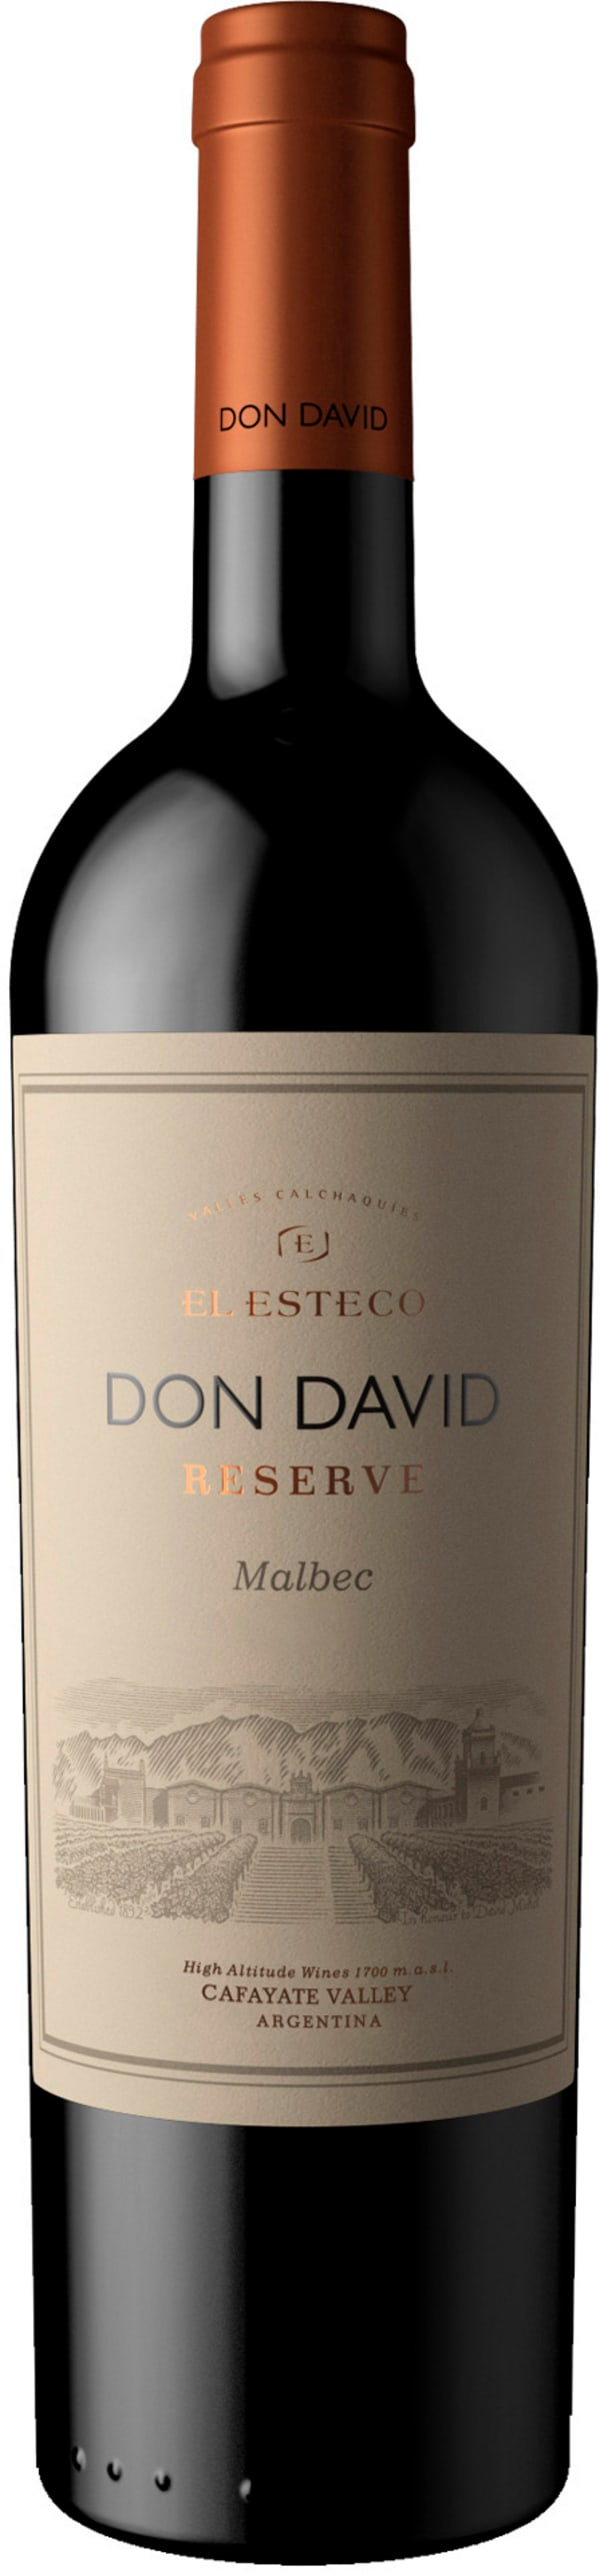 Don David Malbec Reserve 2017